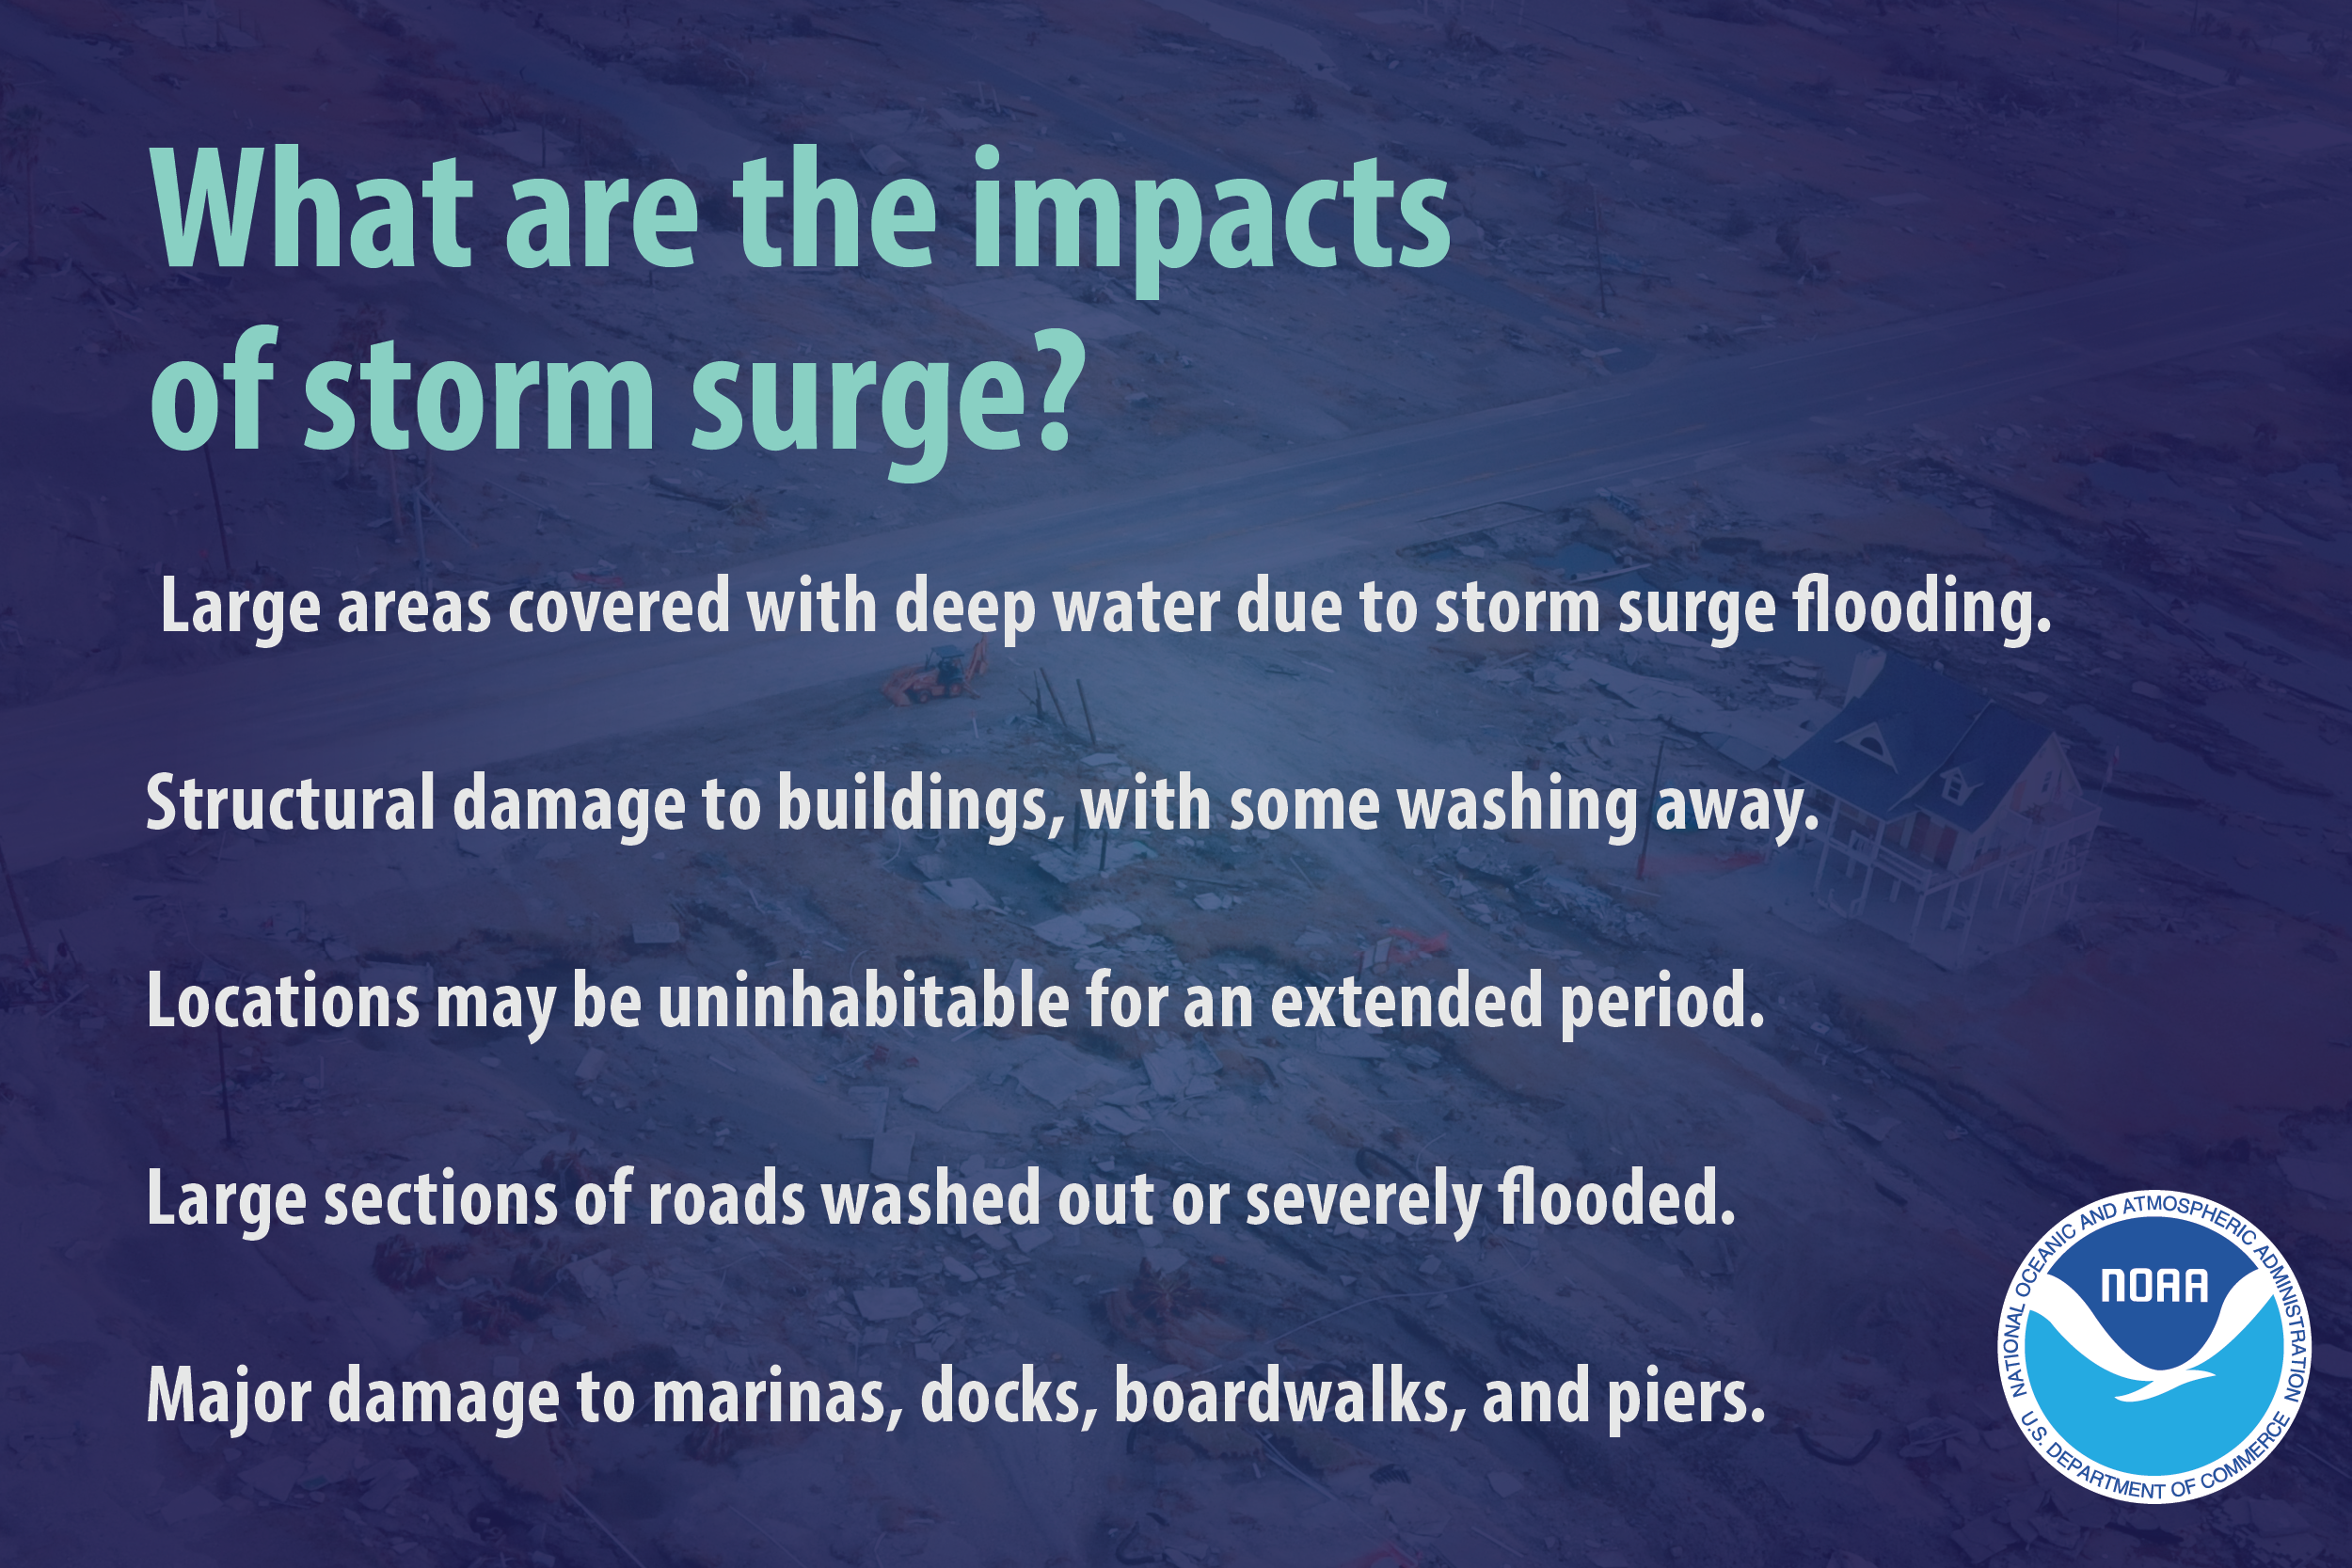 What are the impacts of storm surge? Large areas covered with deep water due to storm surge flooding. Structural damage to buildings, with some washing away. Locations may be uninhabitable for an extended period. Large sections of roads washed out or severely flooded. Major damage to marinas, docks, boardwalks, and piers.